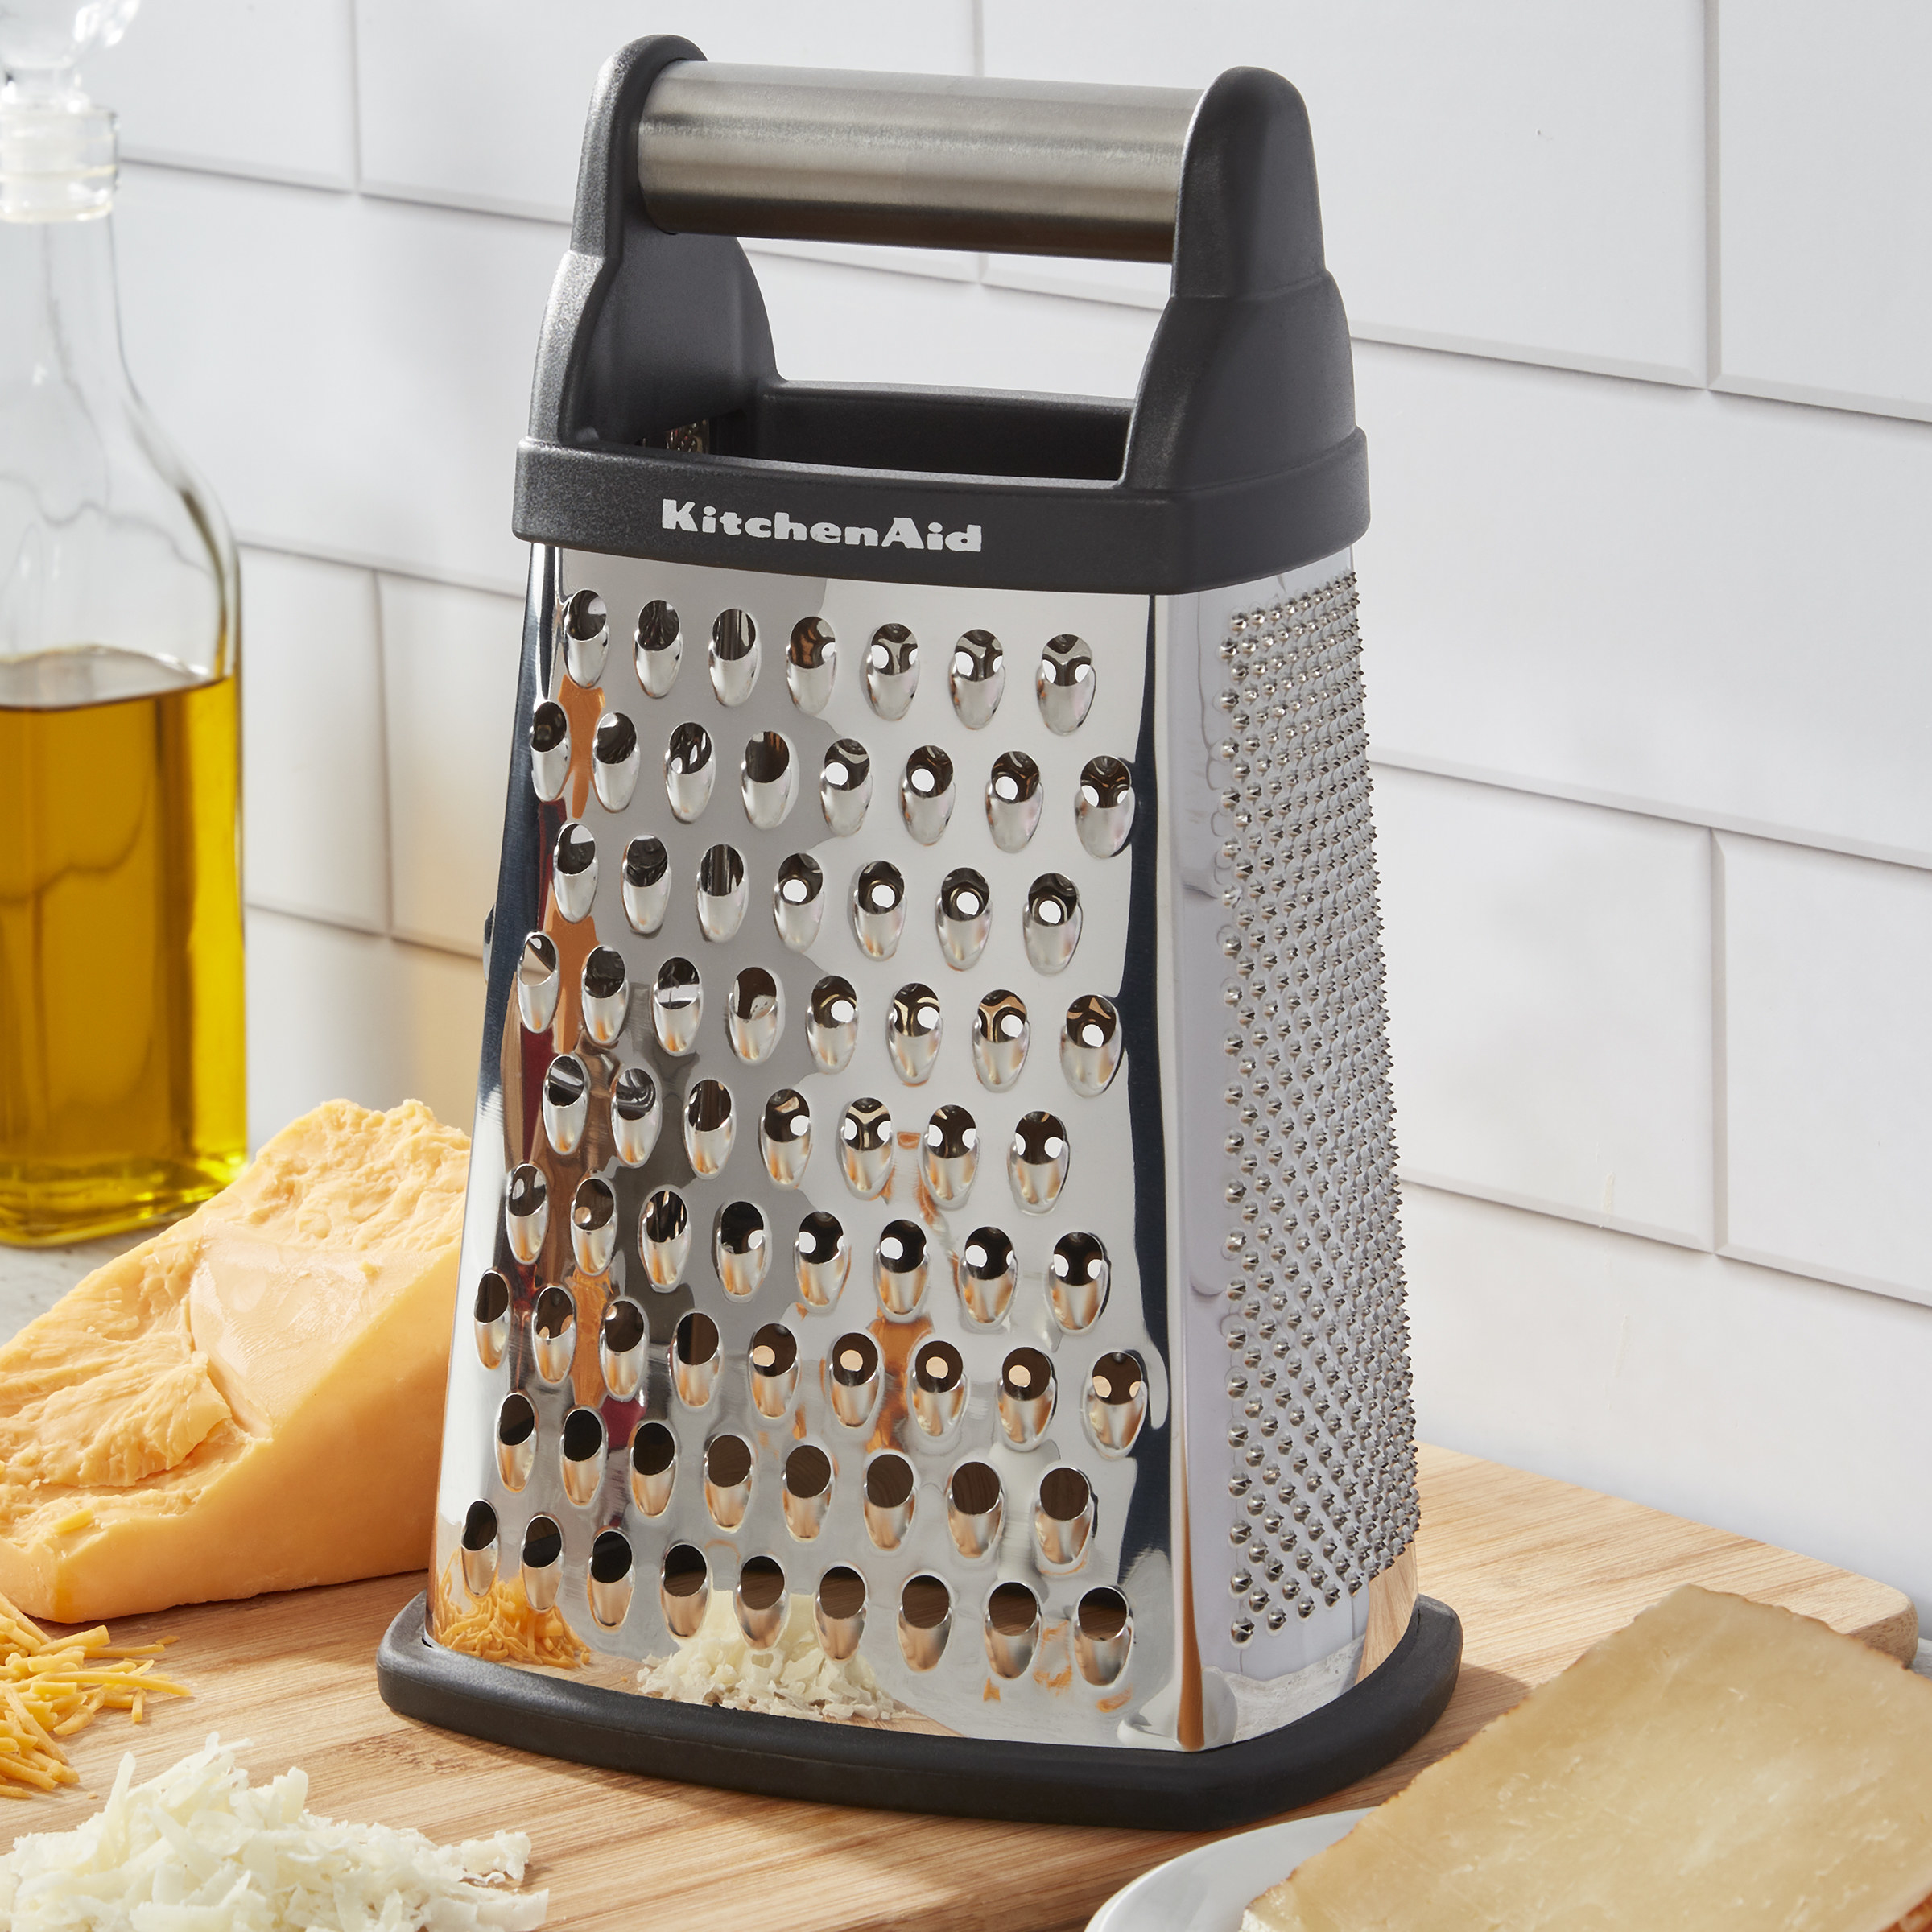 The stand-up grater